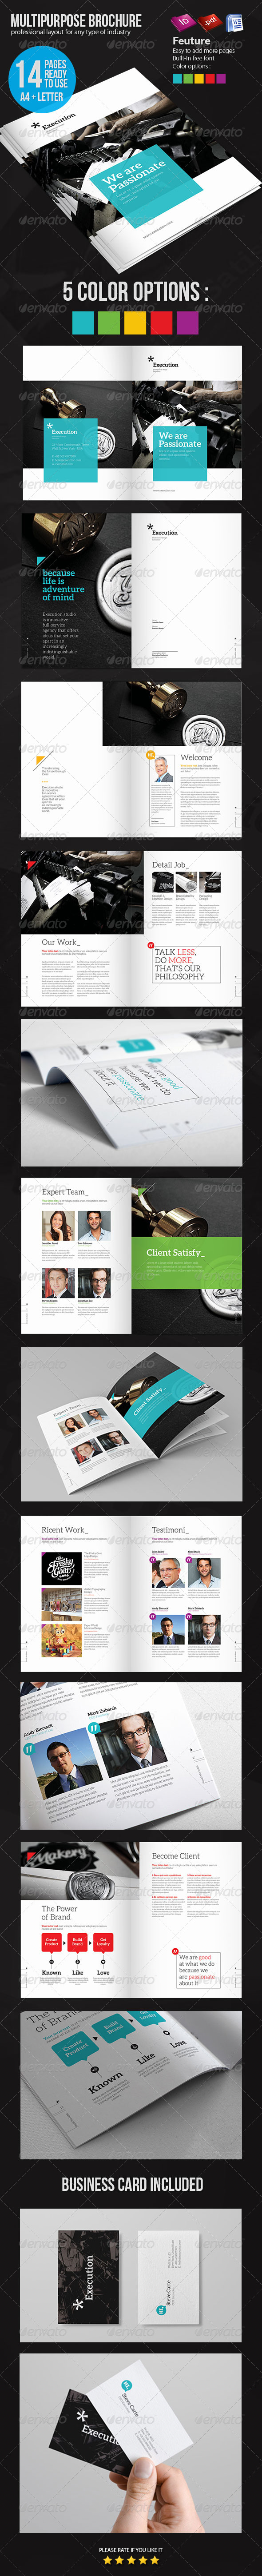 GraphicRiver Business Brochure 4980239